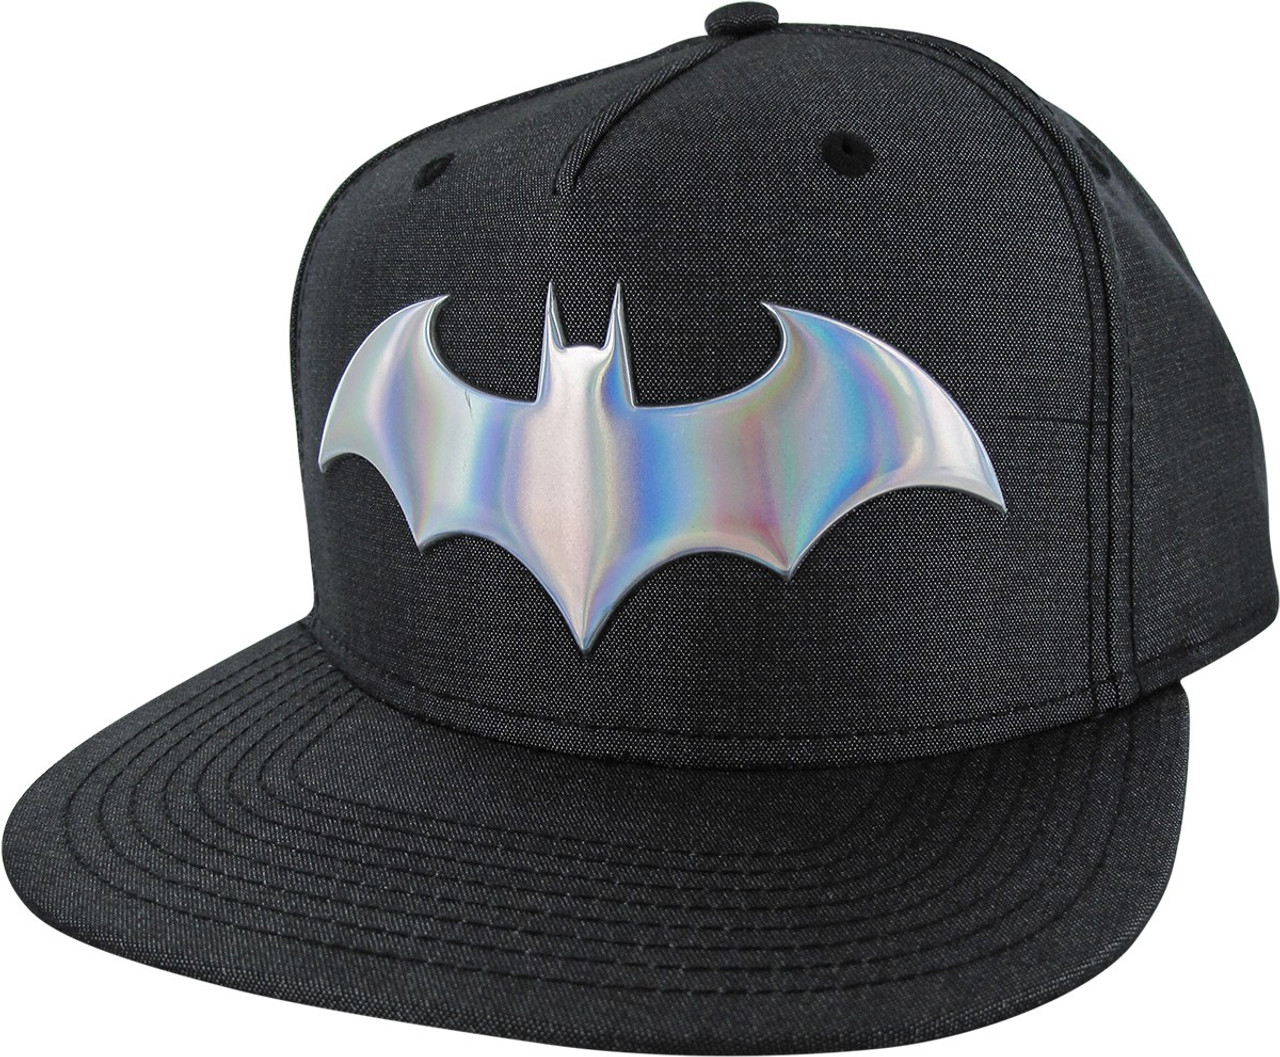 brand new 645b2 ae79d ... coupon code for batman iridescent logo woven fabric snapback hat 481d6  6a38a